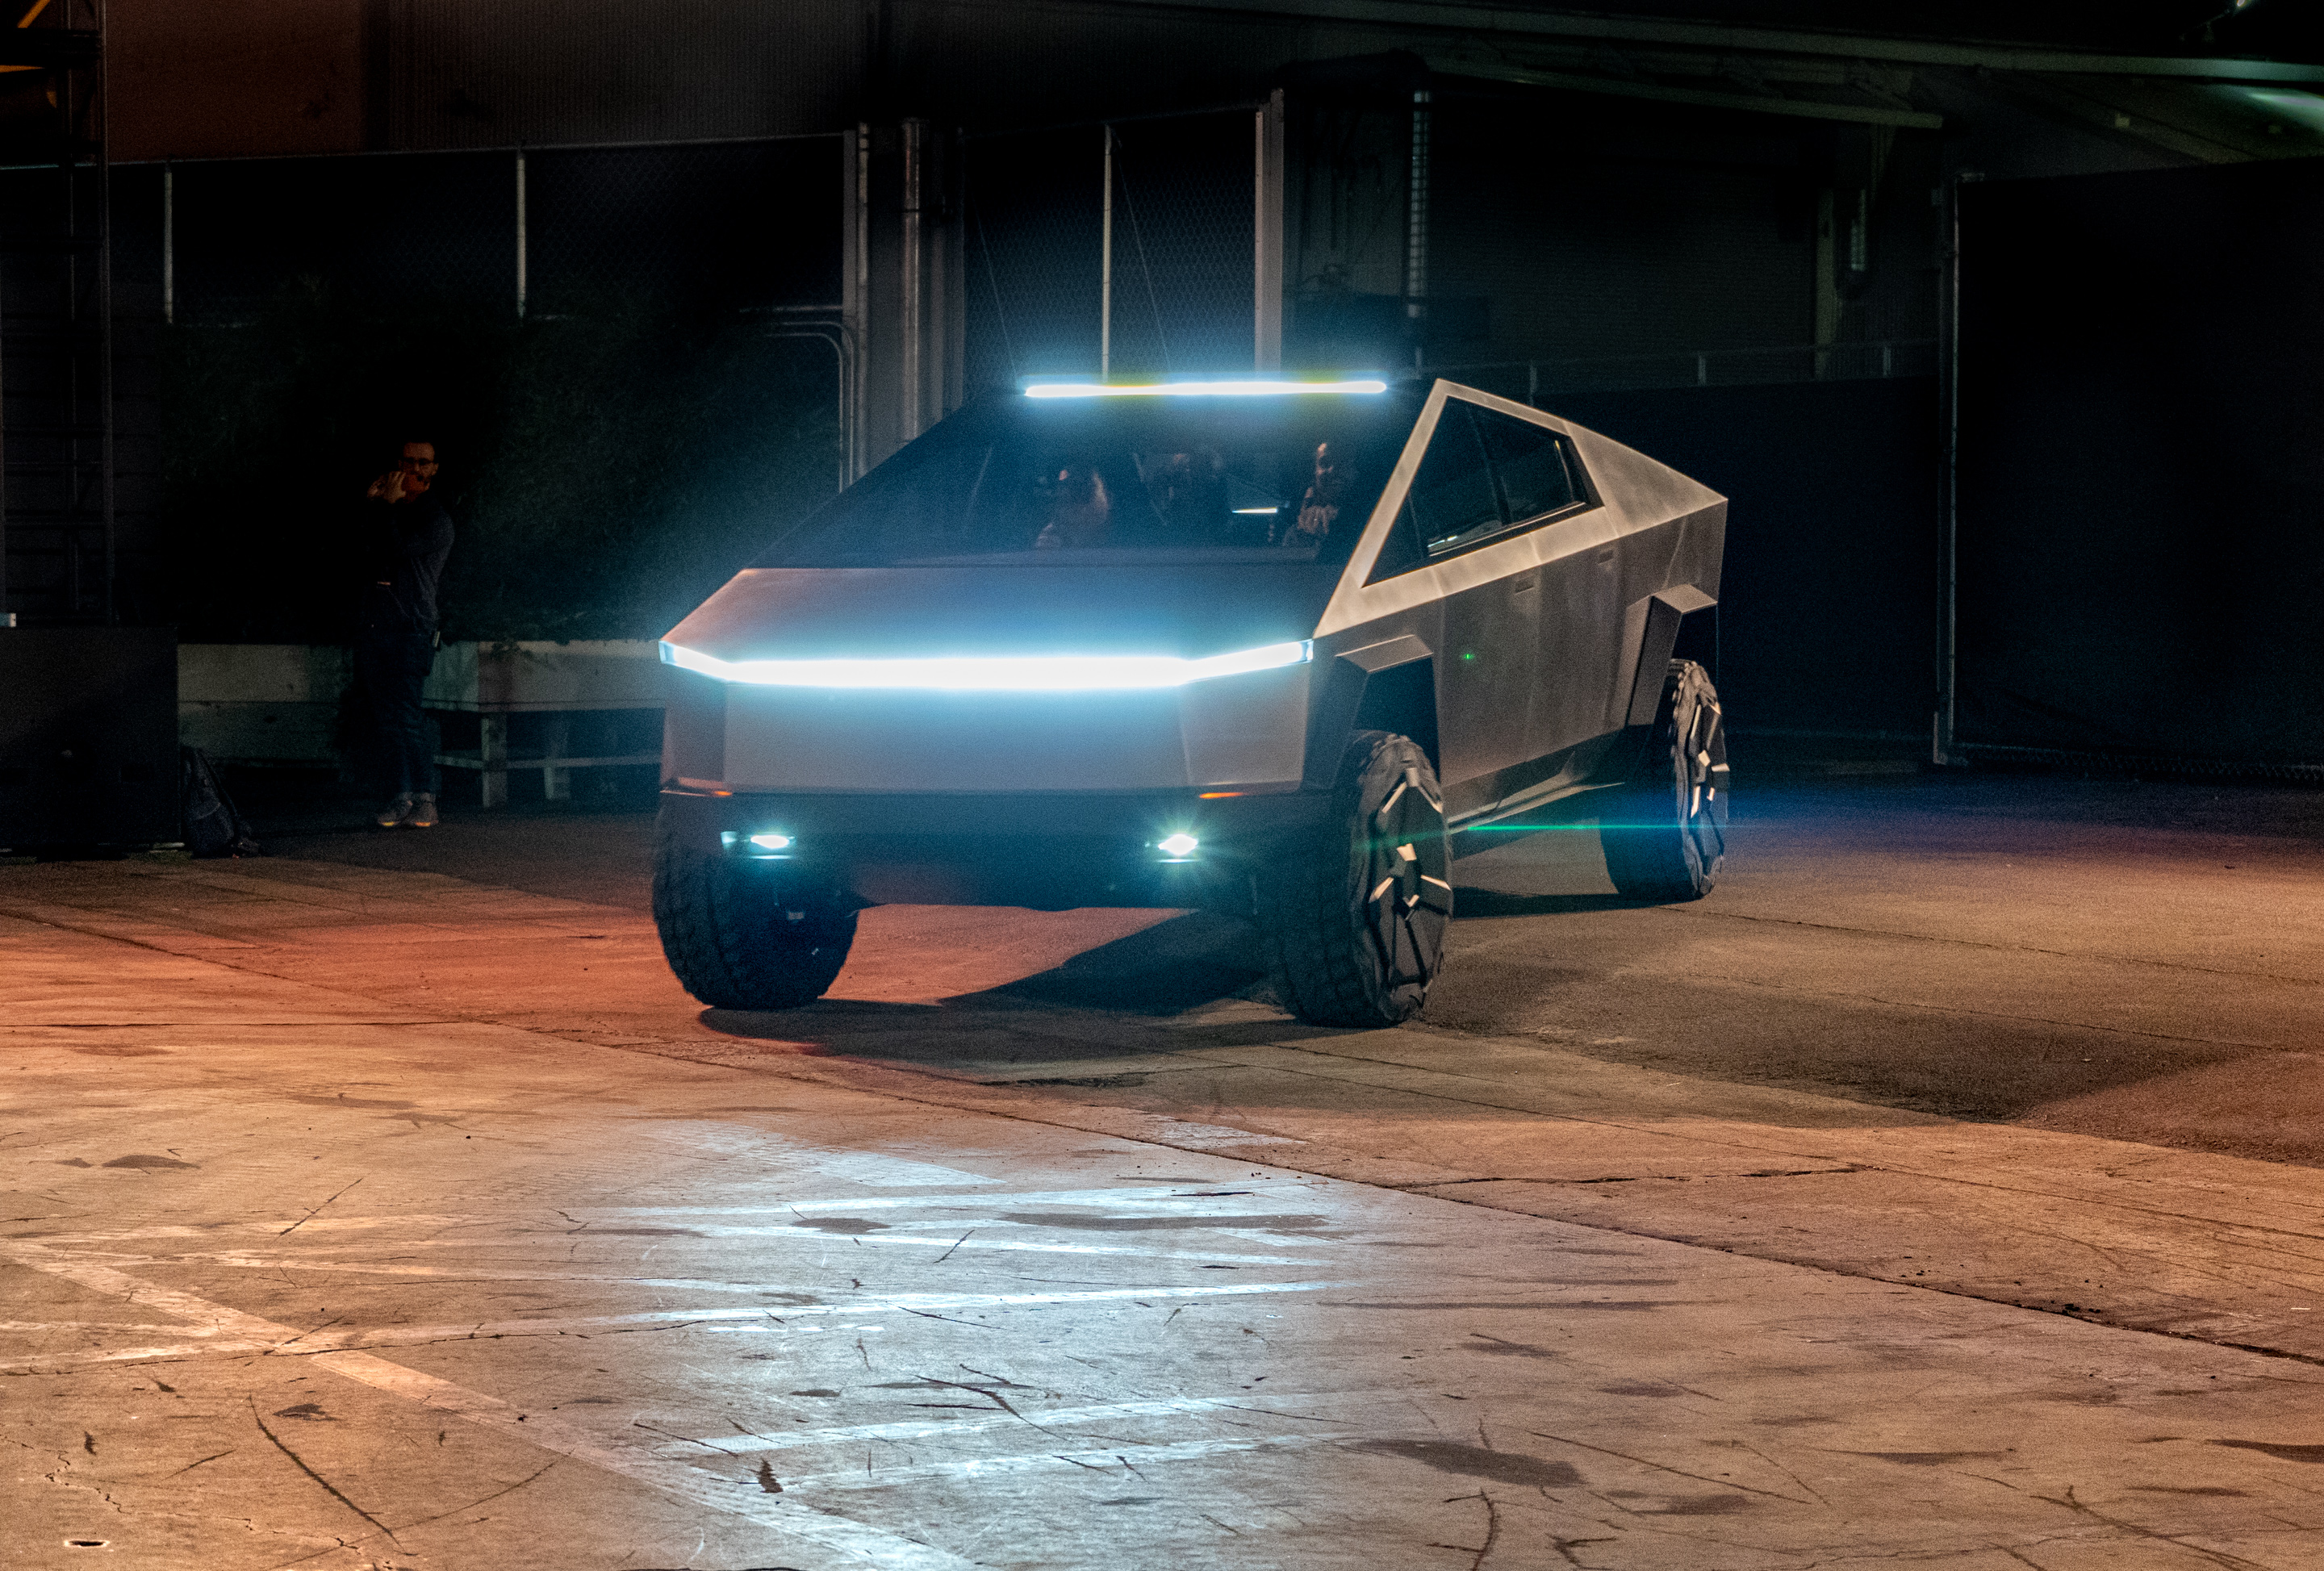 Tesla Cybertruck headlights light up the route in Los Angeles test ride on Nov. 21, 2019